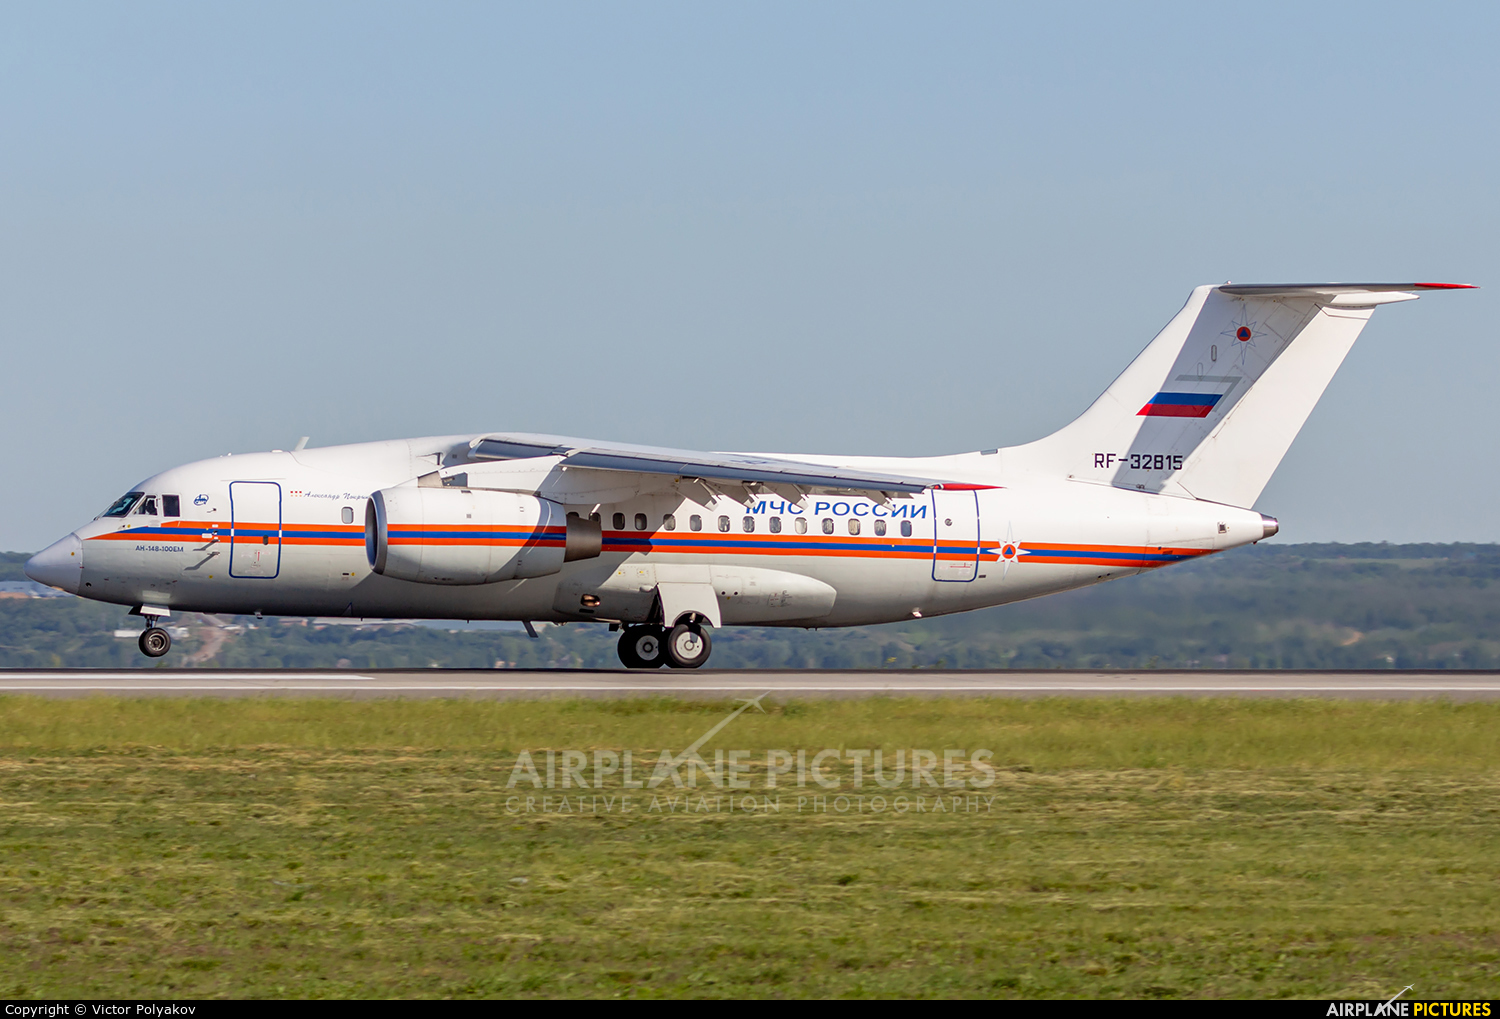 Russia - МЧС России EMERCOM RF-32815 aircraft at Rostov-on-Don